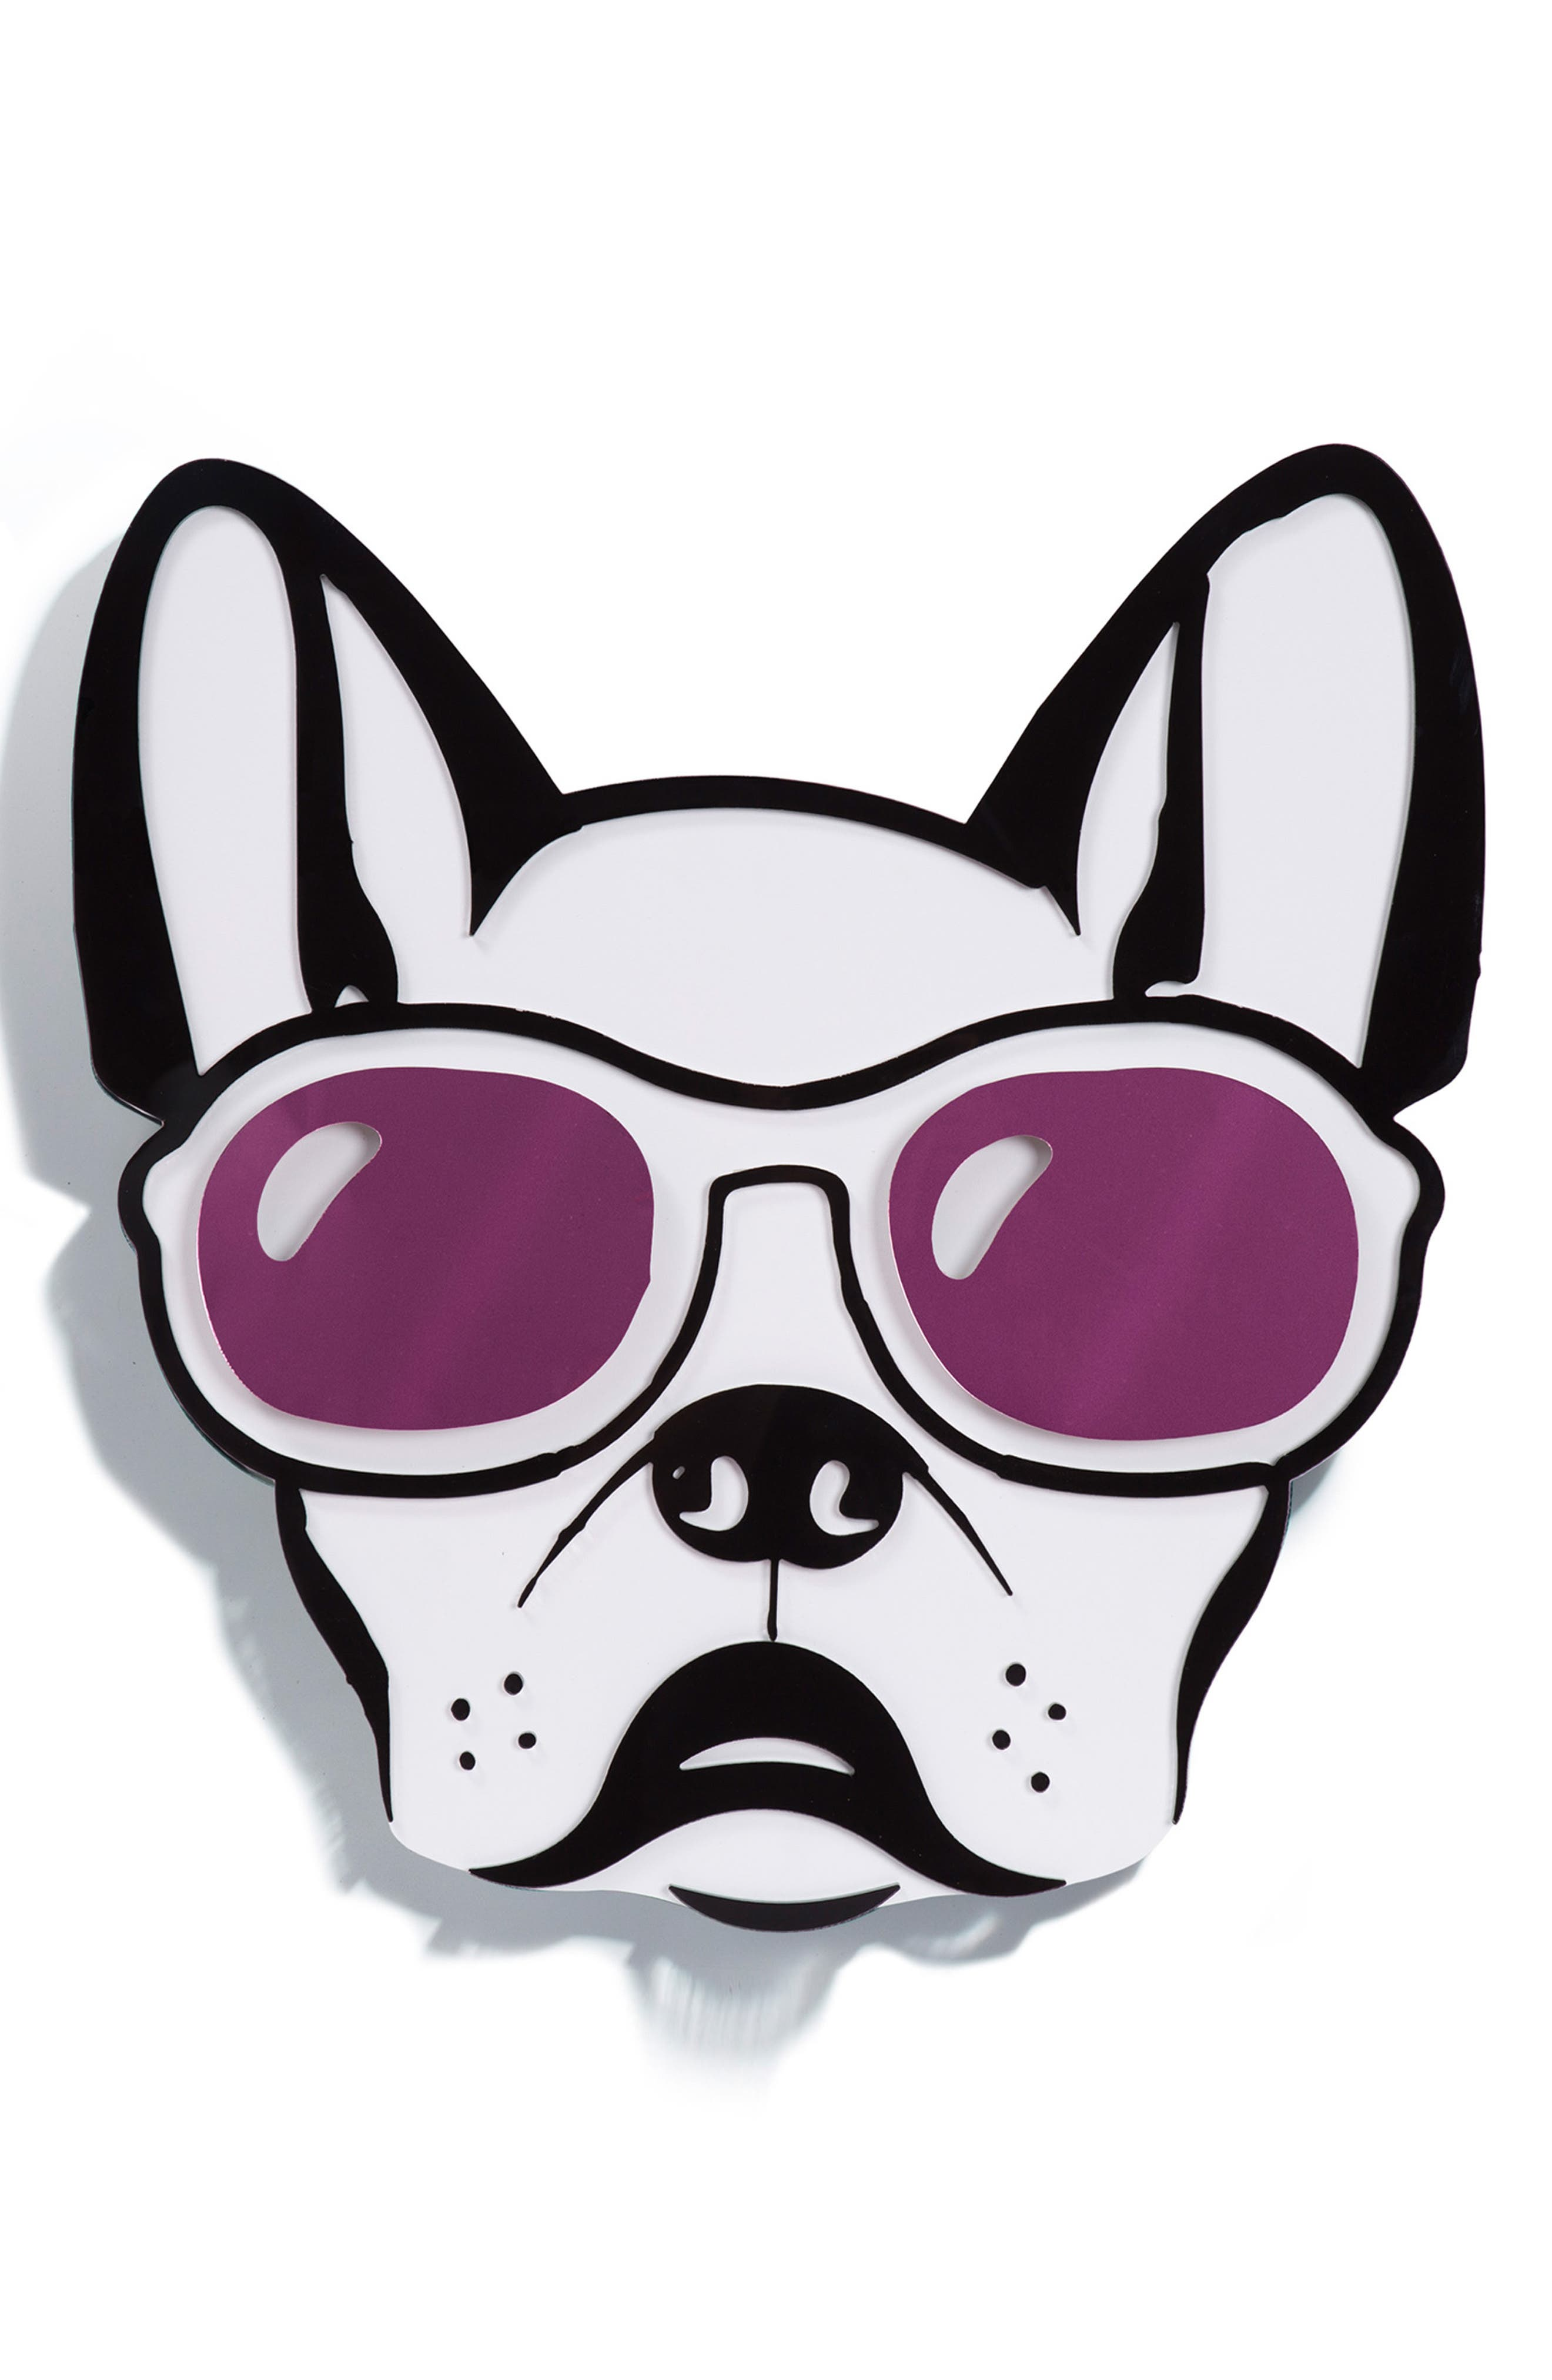 Cool Dog Wall Art,                             Main thumbnail 1, color,                             PURPLE BLACK AND WHITE